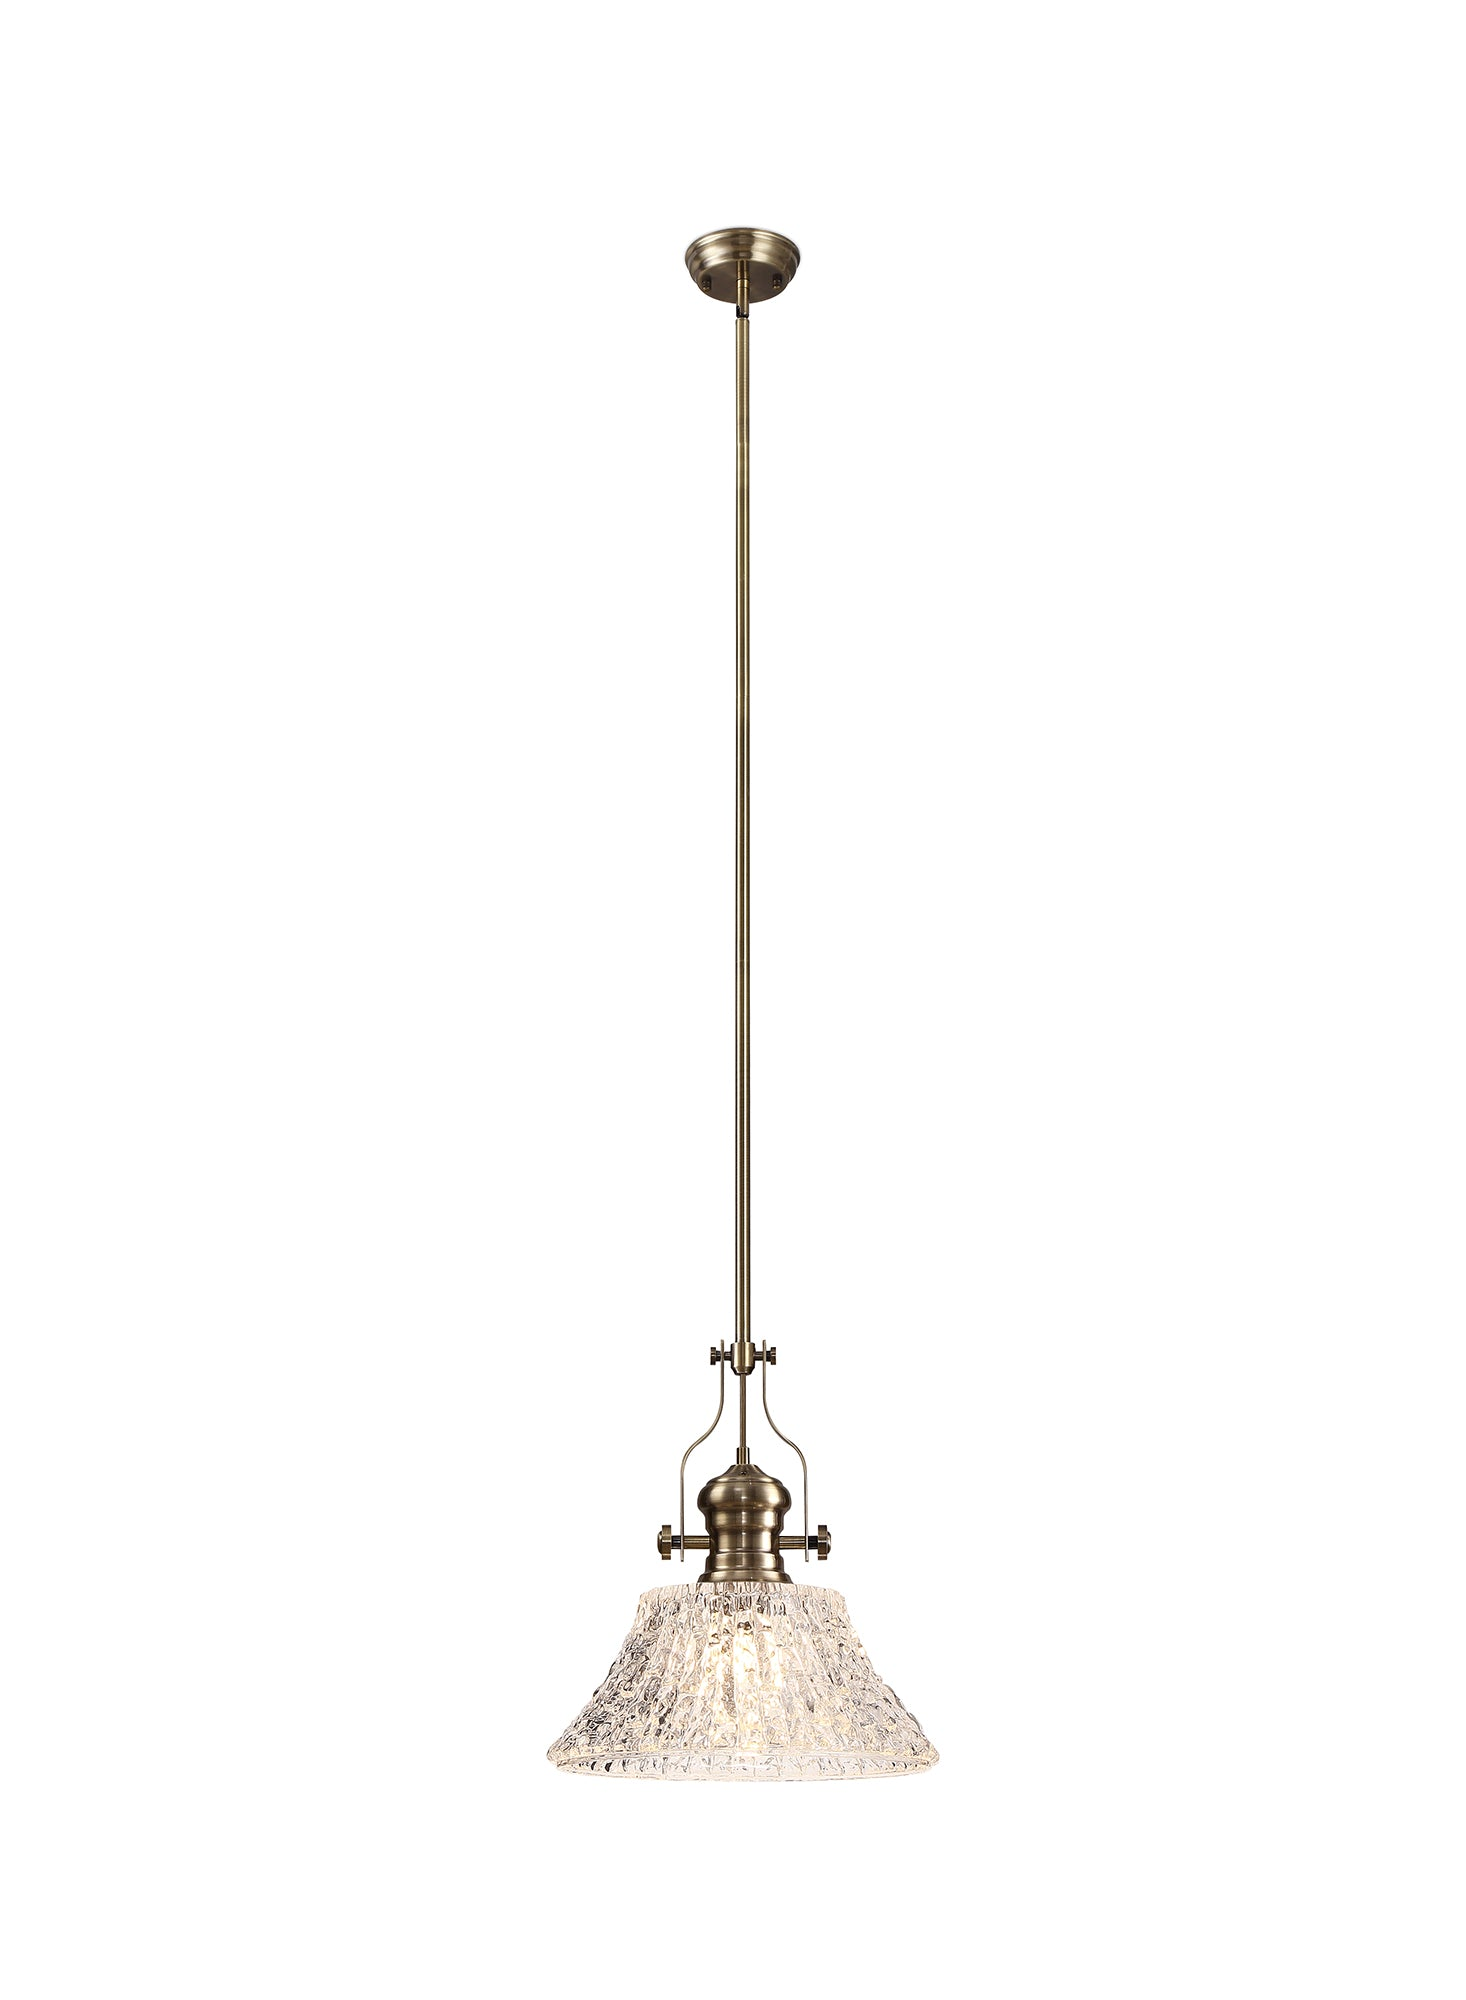 WAREHOUSE Pendant With 38cm Patterned Round Shade, 1 x E27, Antique Brass/Clear Glass